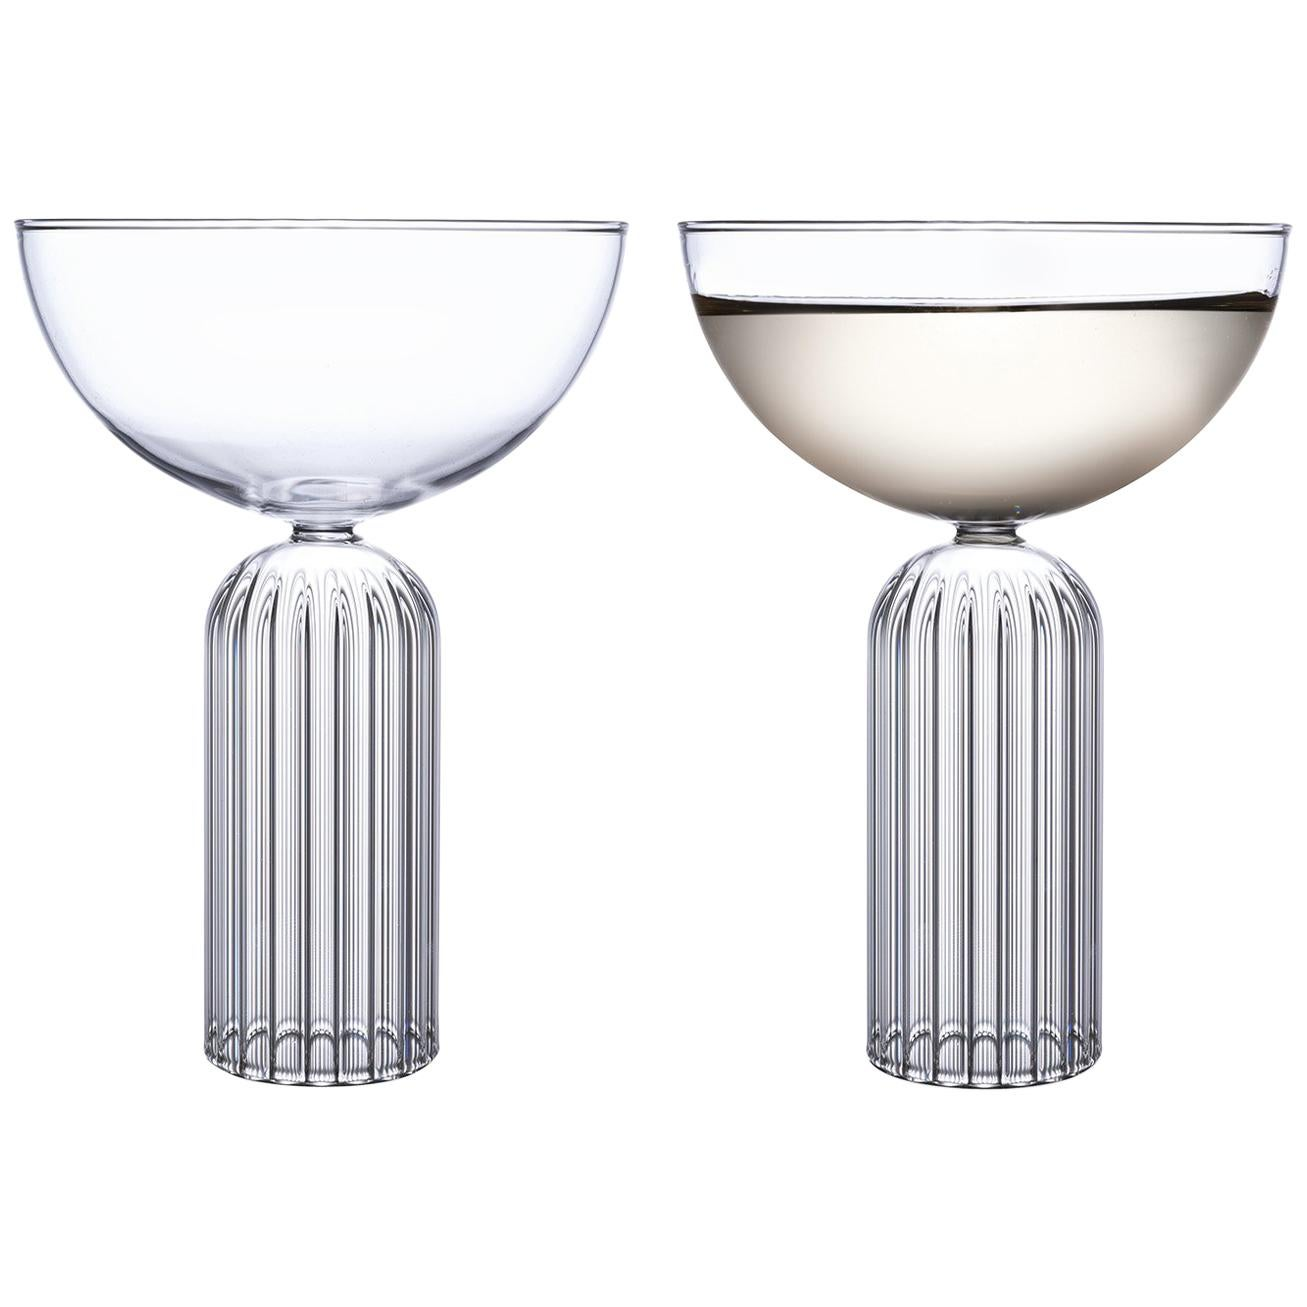 Pair Of Czech Contemporary May Champagne Coupe Glasses Handmade In Stock For Sale At 1stdibs